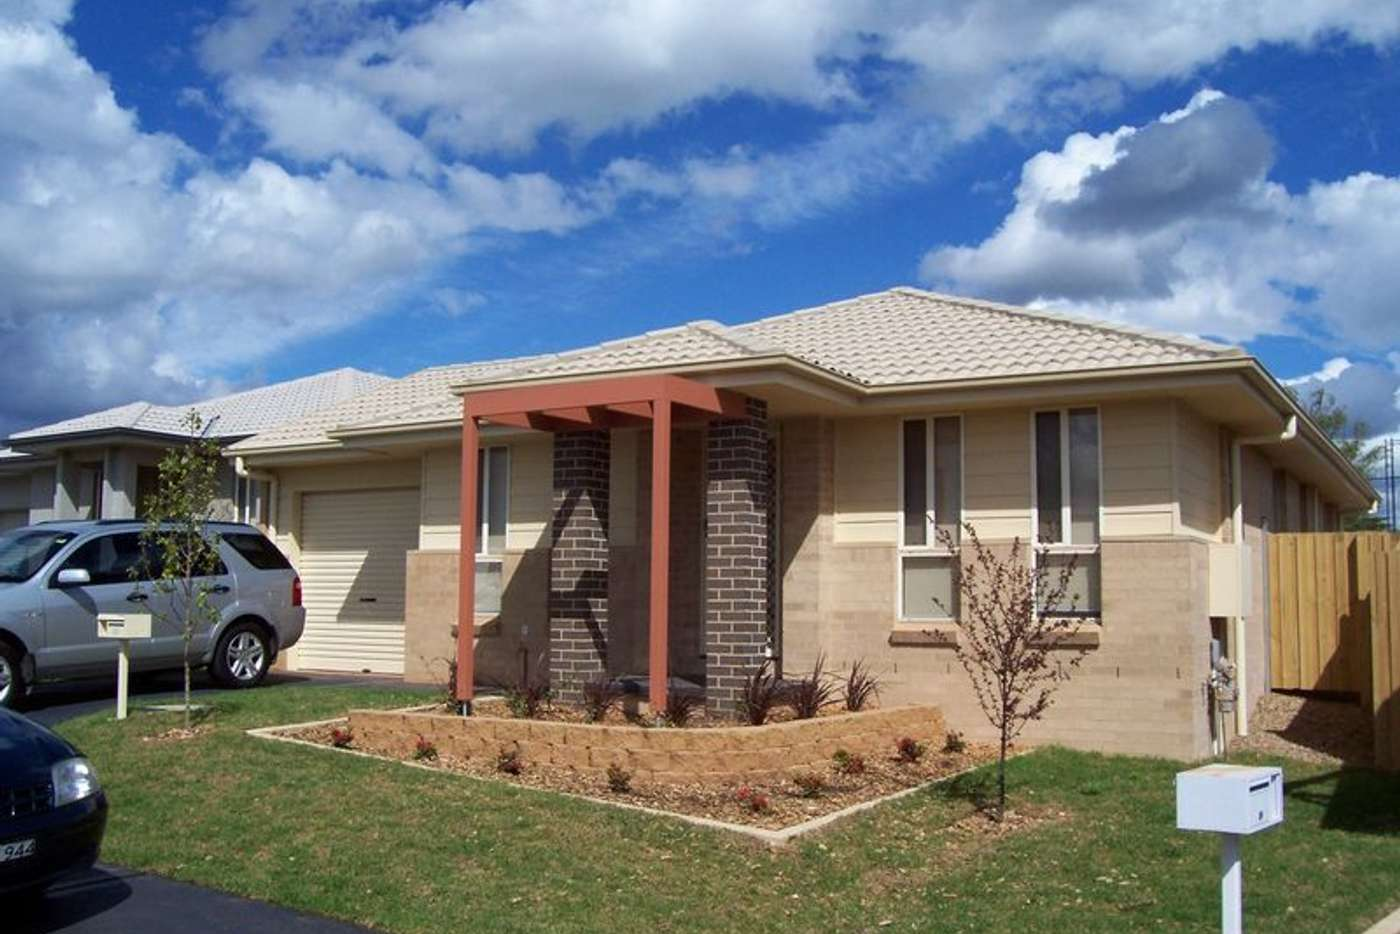 Main view of Homely house listing, 12 Spadacini Place, Goulburn NSW 2580